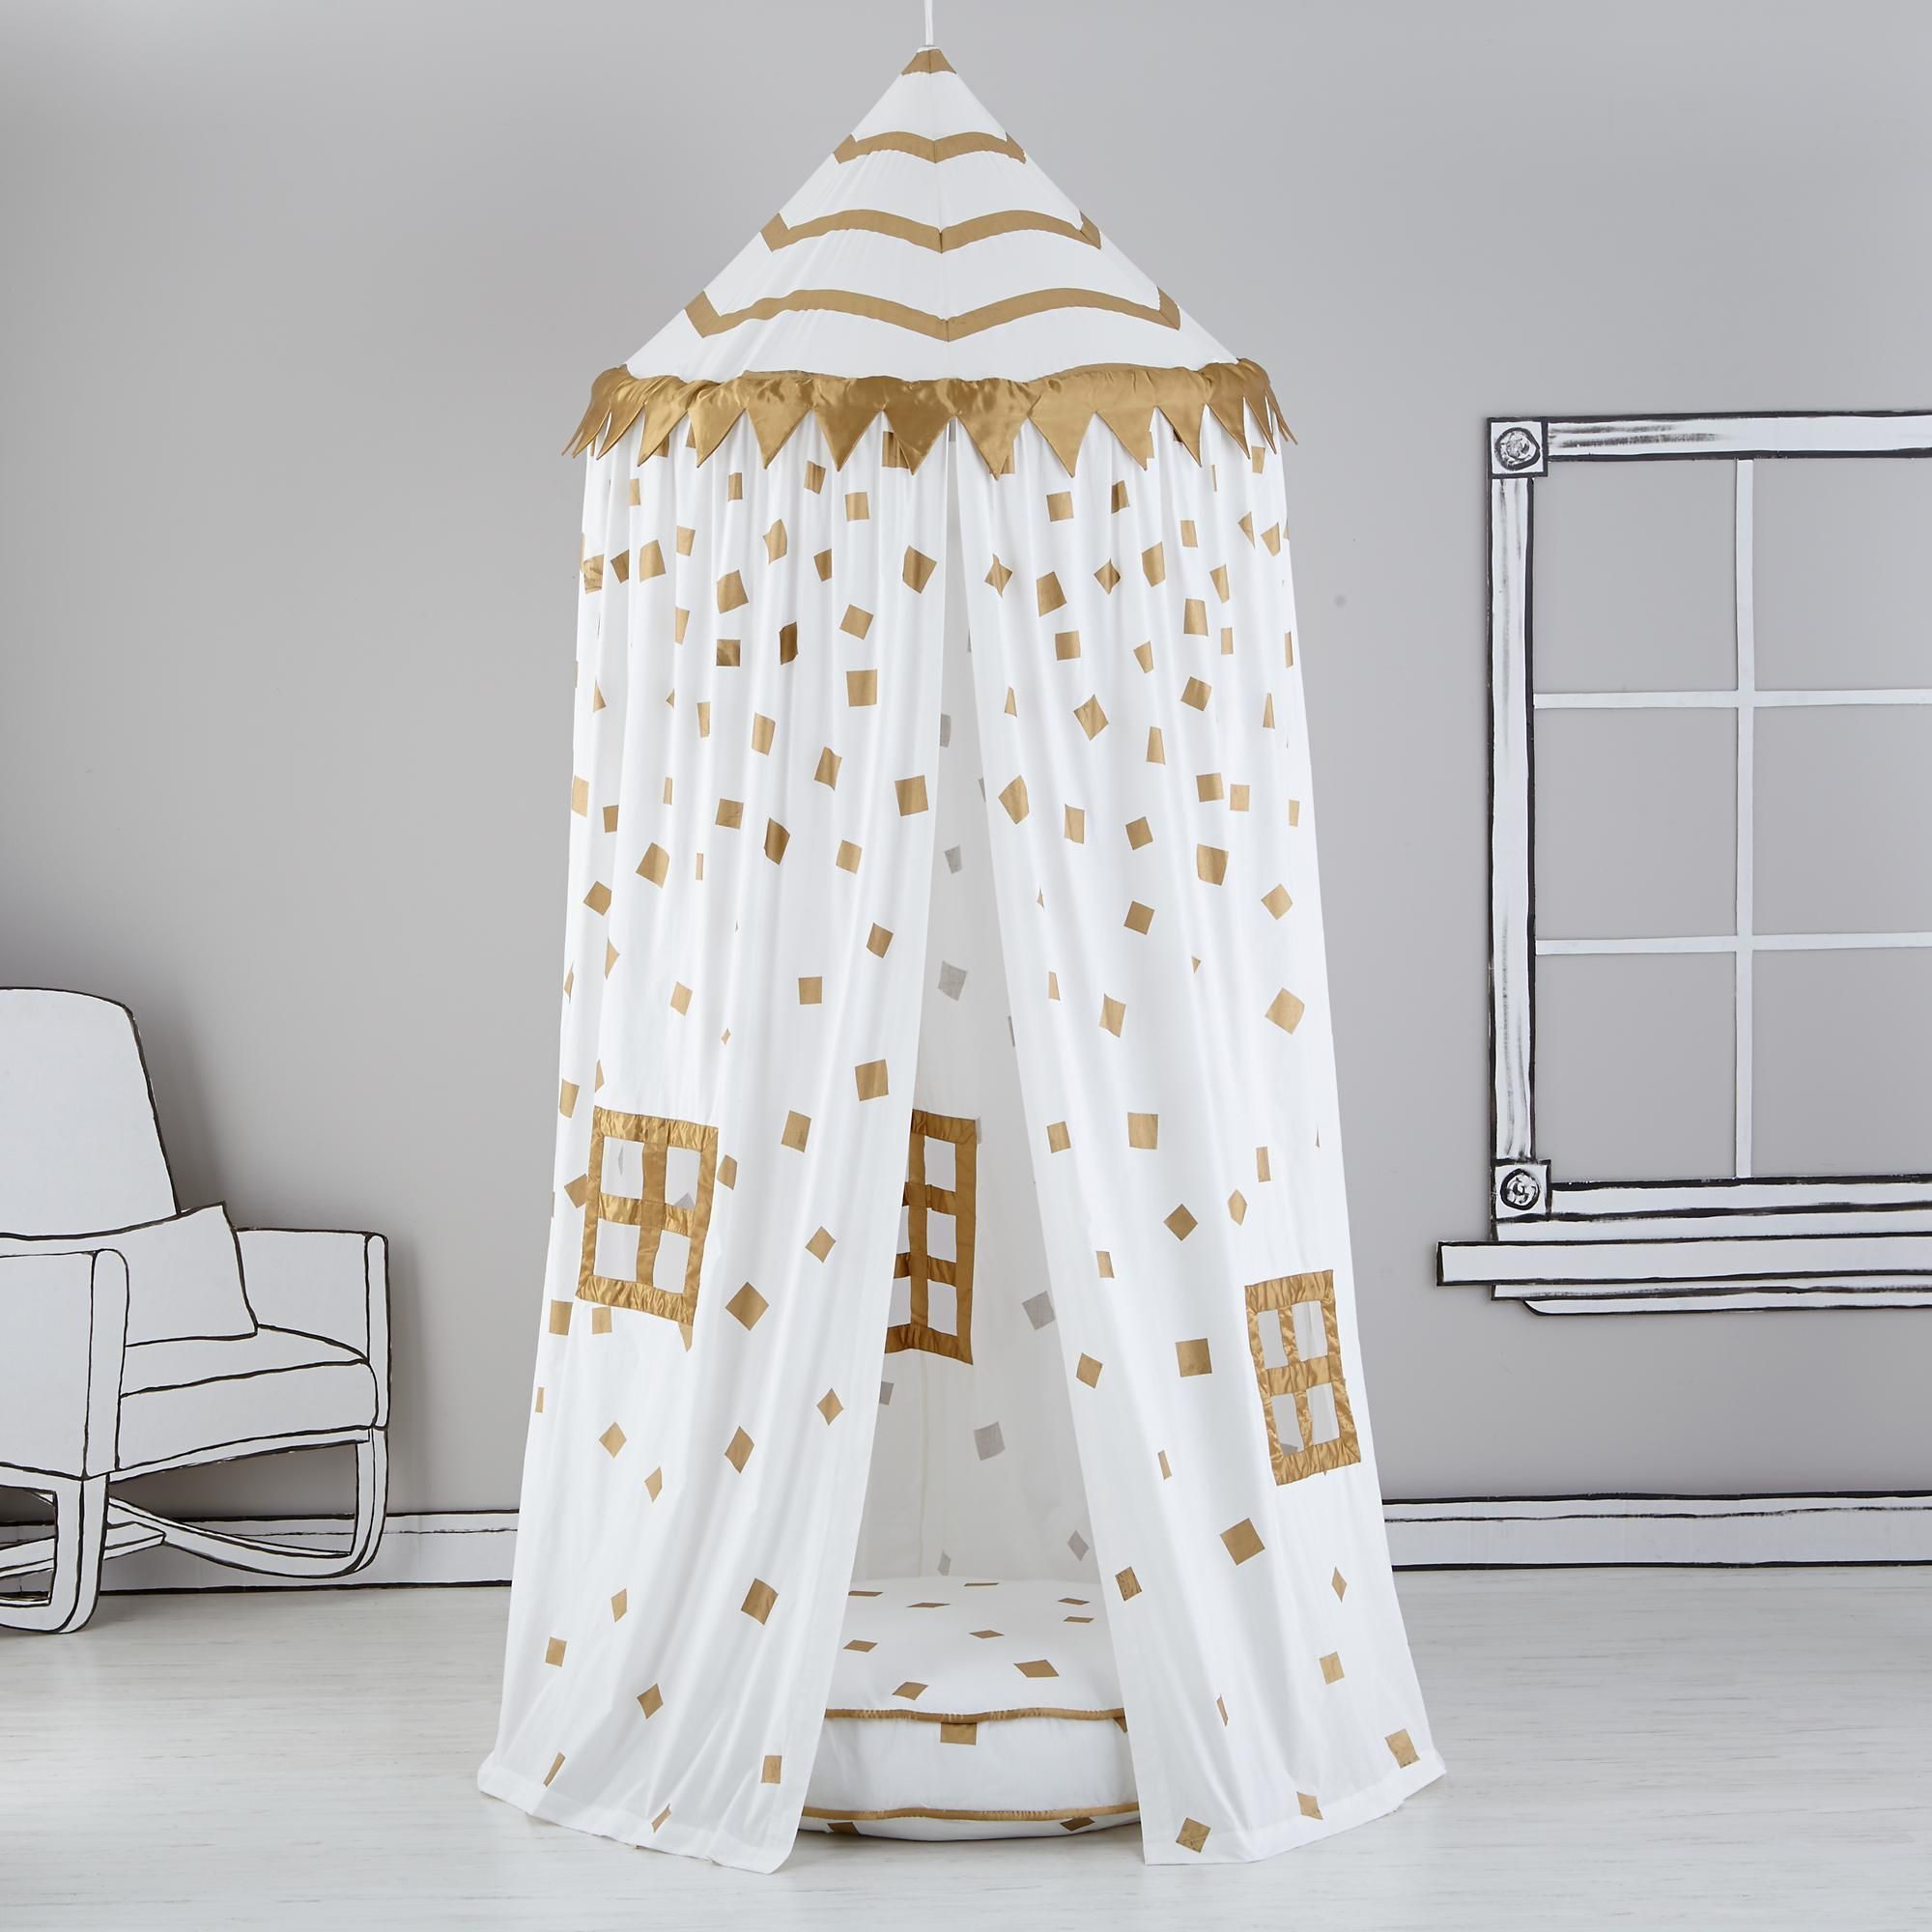 Kids playroom canopy - Land Of Nod Home Sweet Play Home Canopy